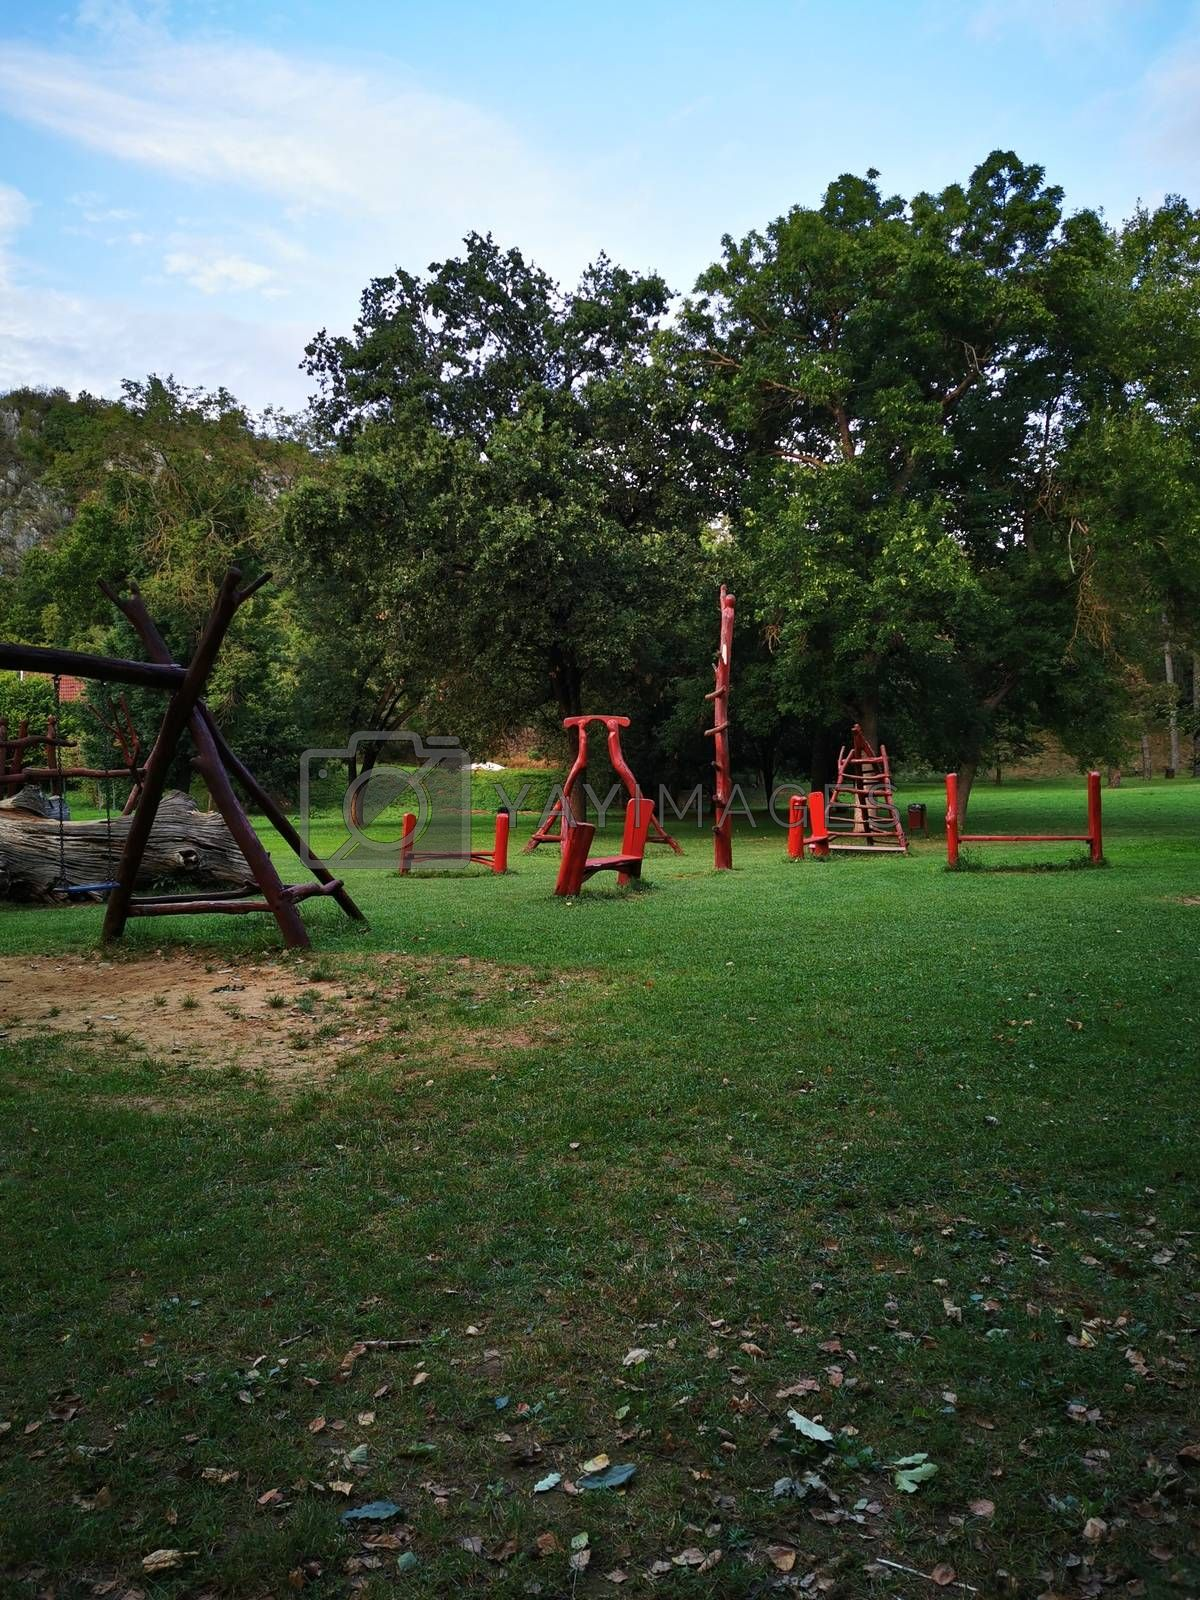 Royalty free image of Playground at the entrance to the Aggtelek Drape cave by balage941